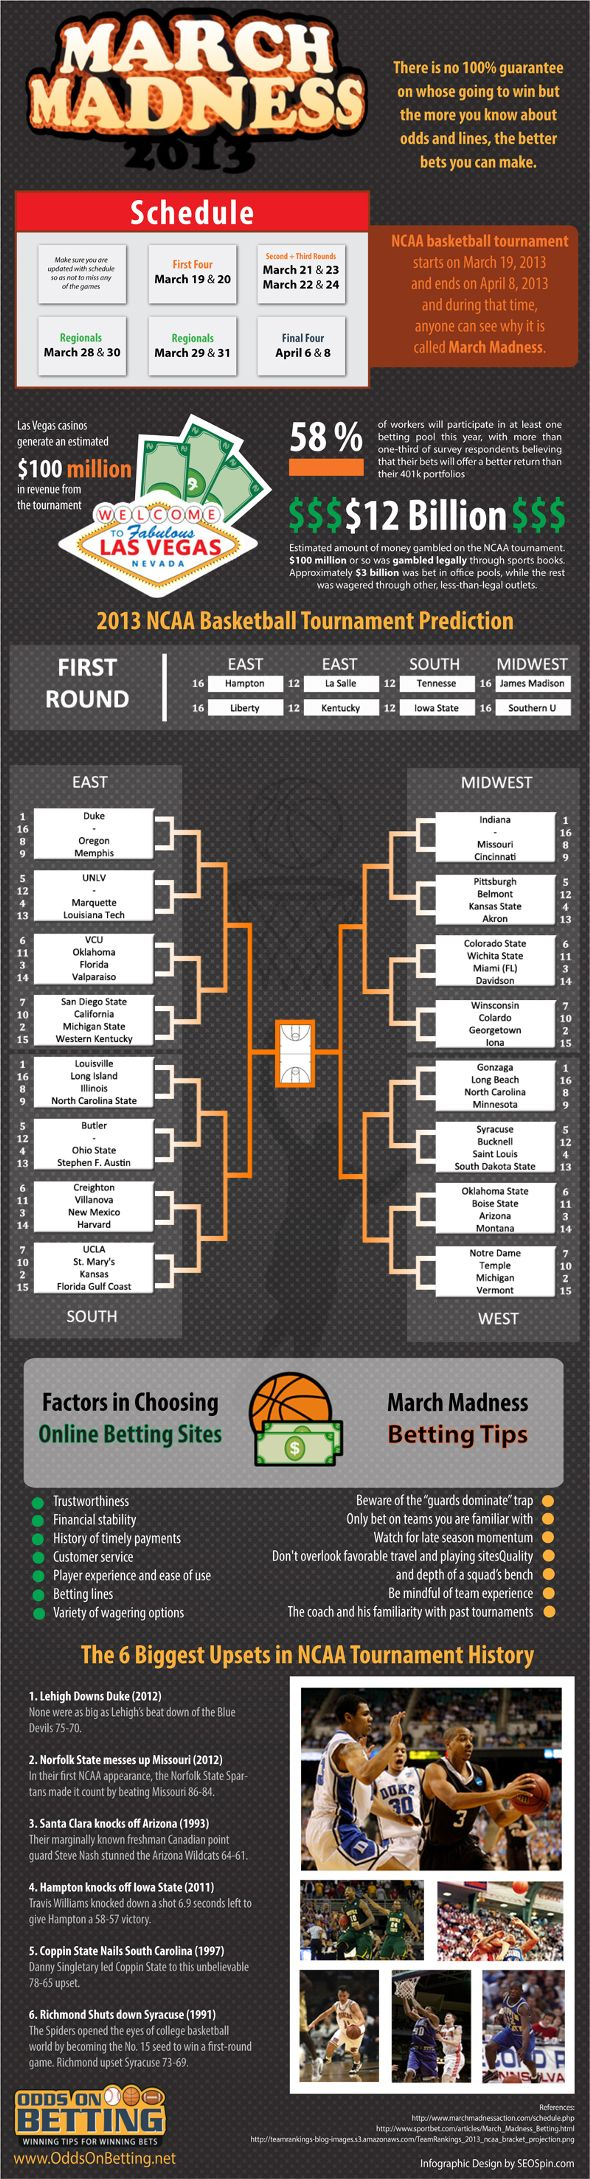 March Madness 2013